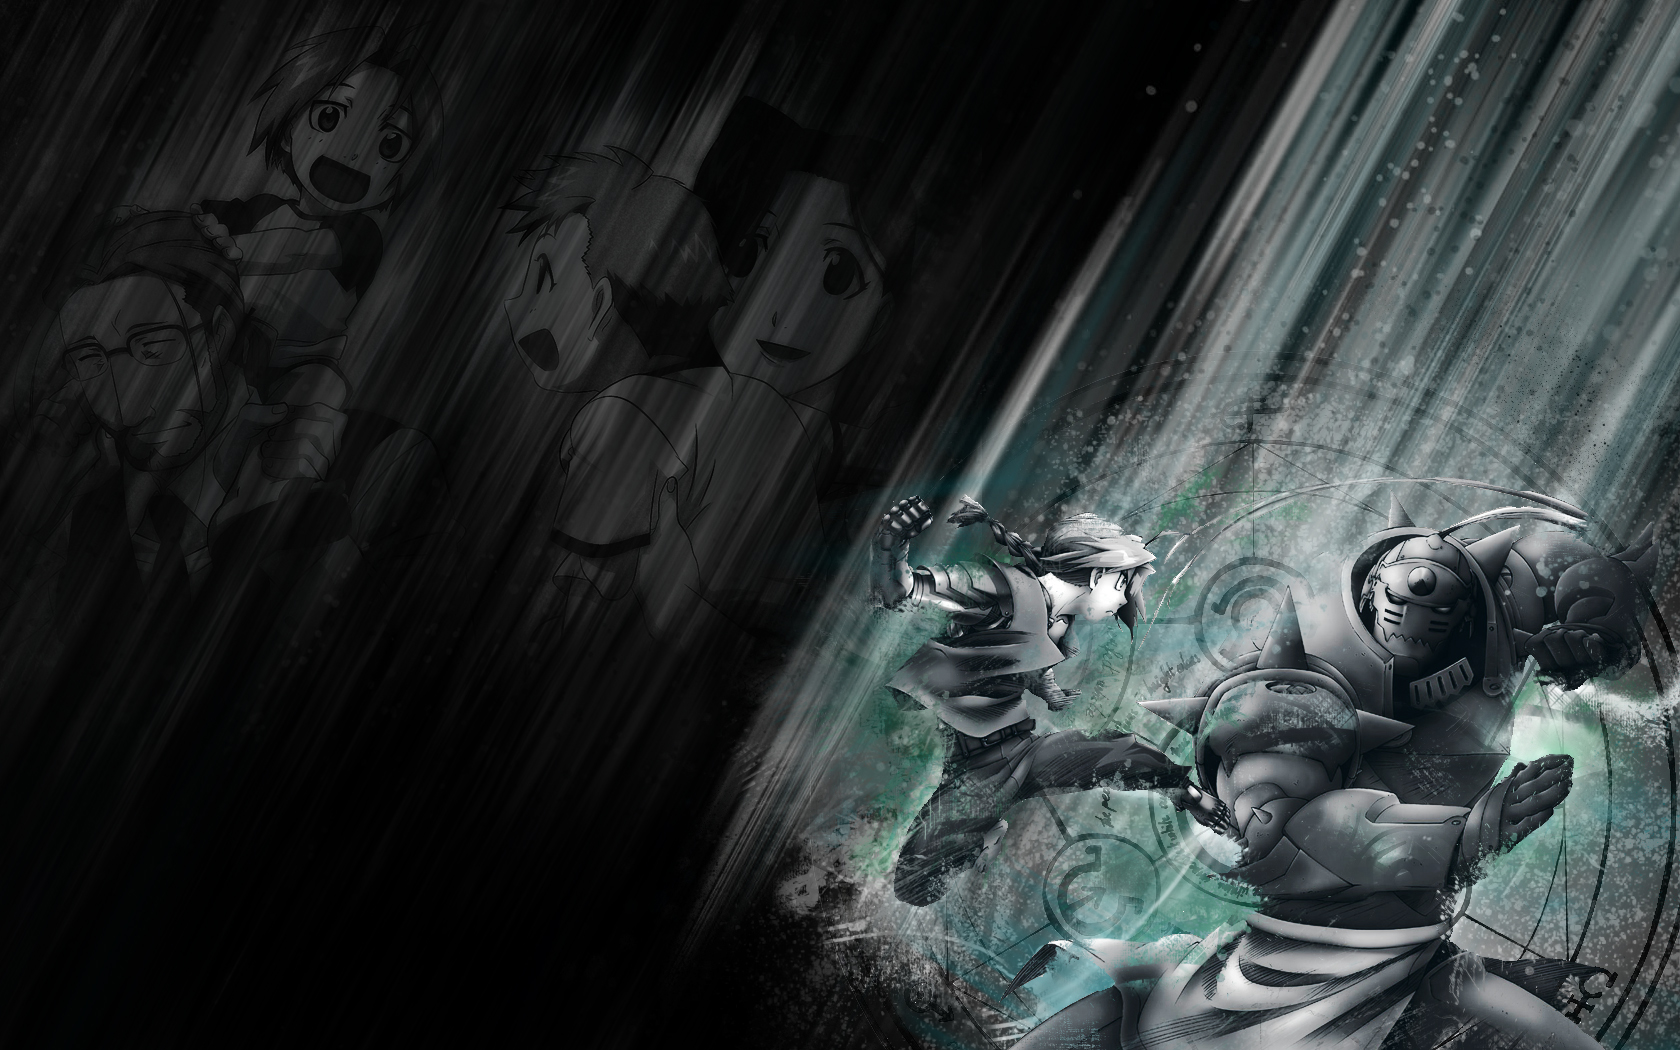 Fullmetal Alchemist Wallpaper Hd 1680x1050